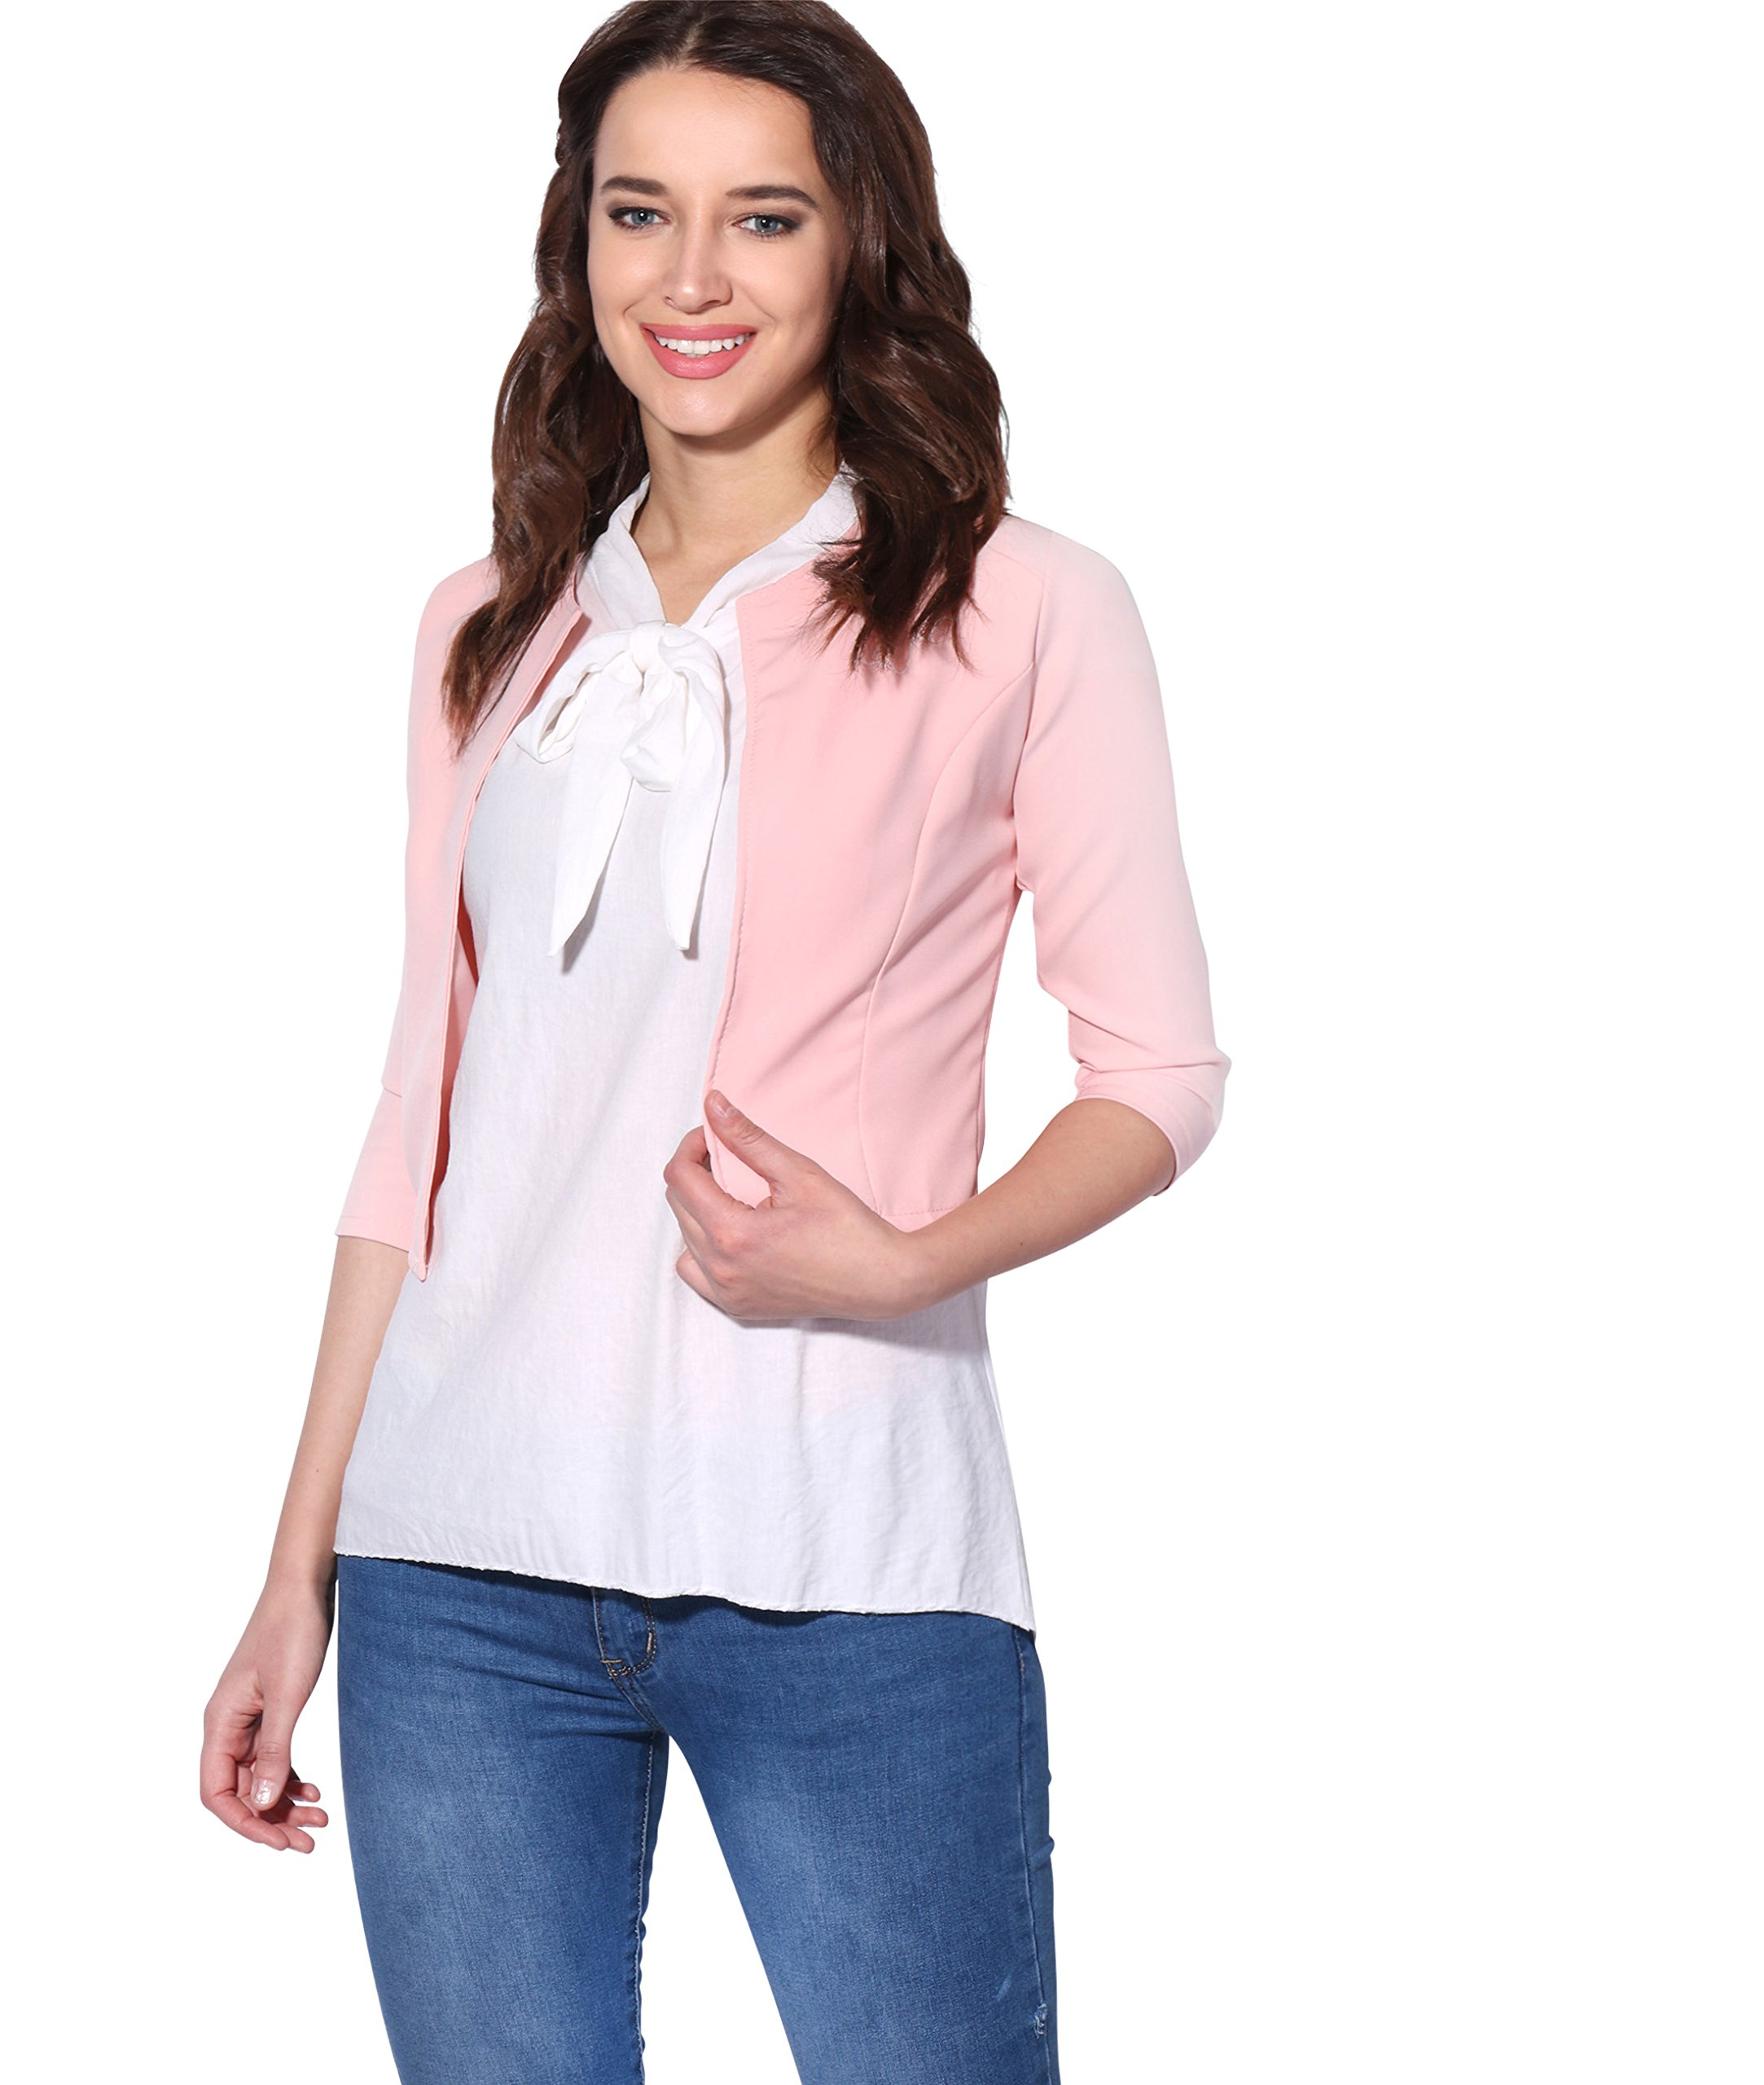 KRISP 3/4 Sleeve Party Shrug(Pink, Small),[5026-PNK-S]